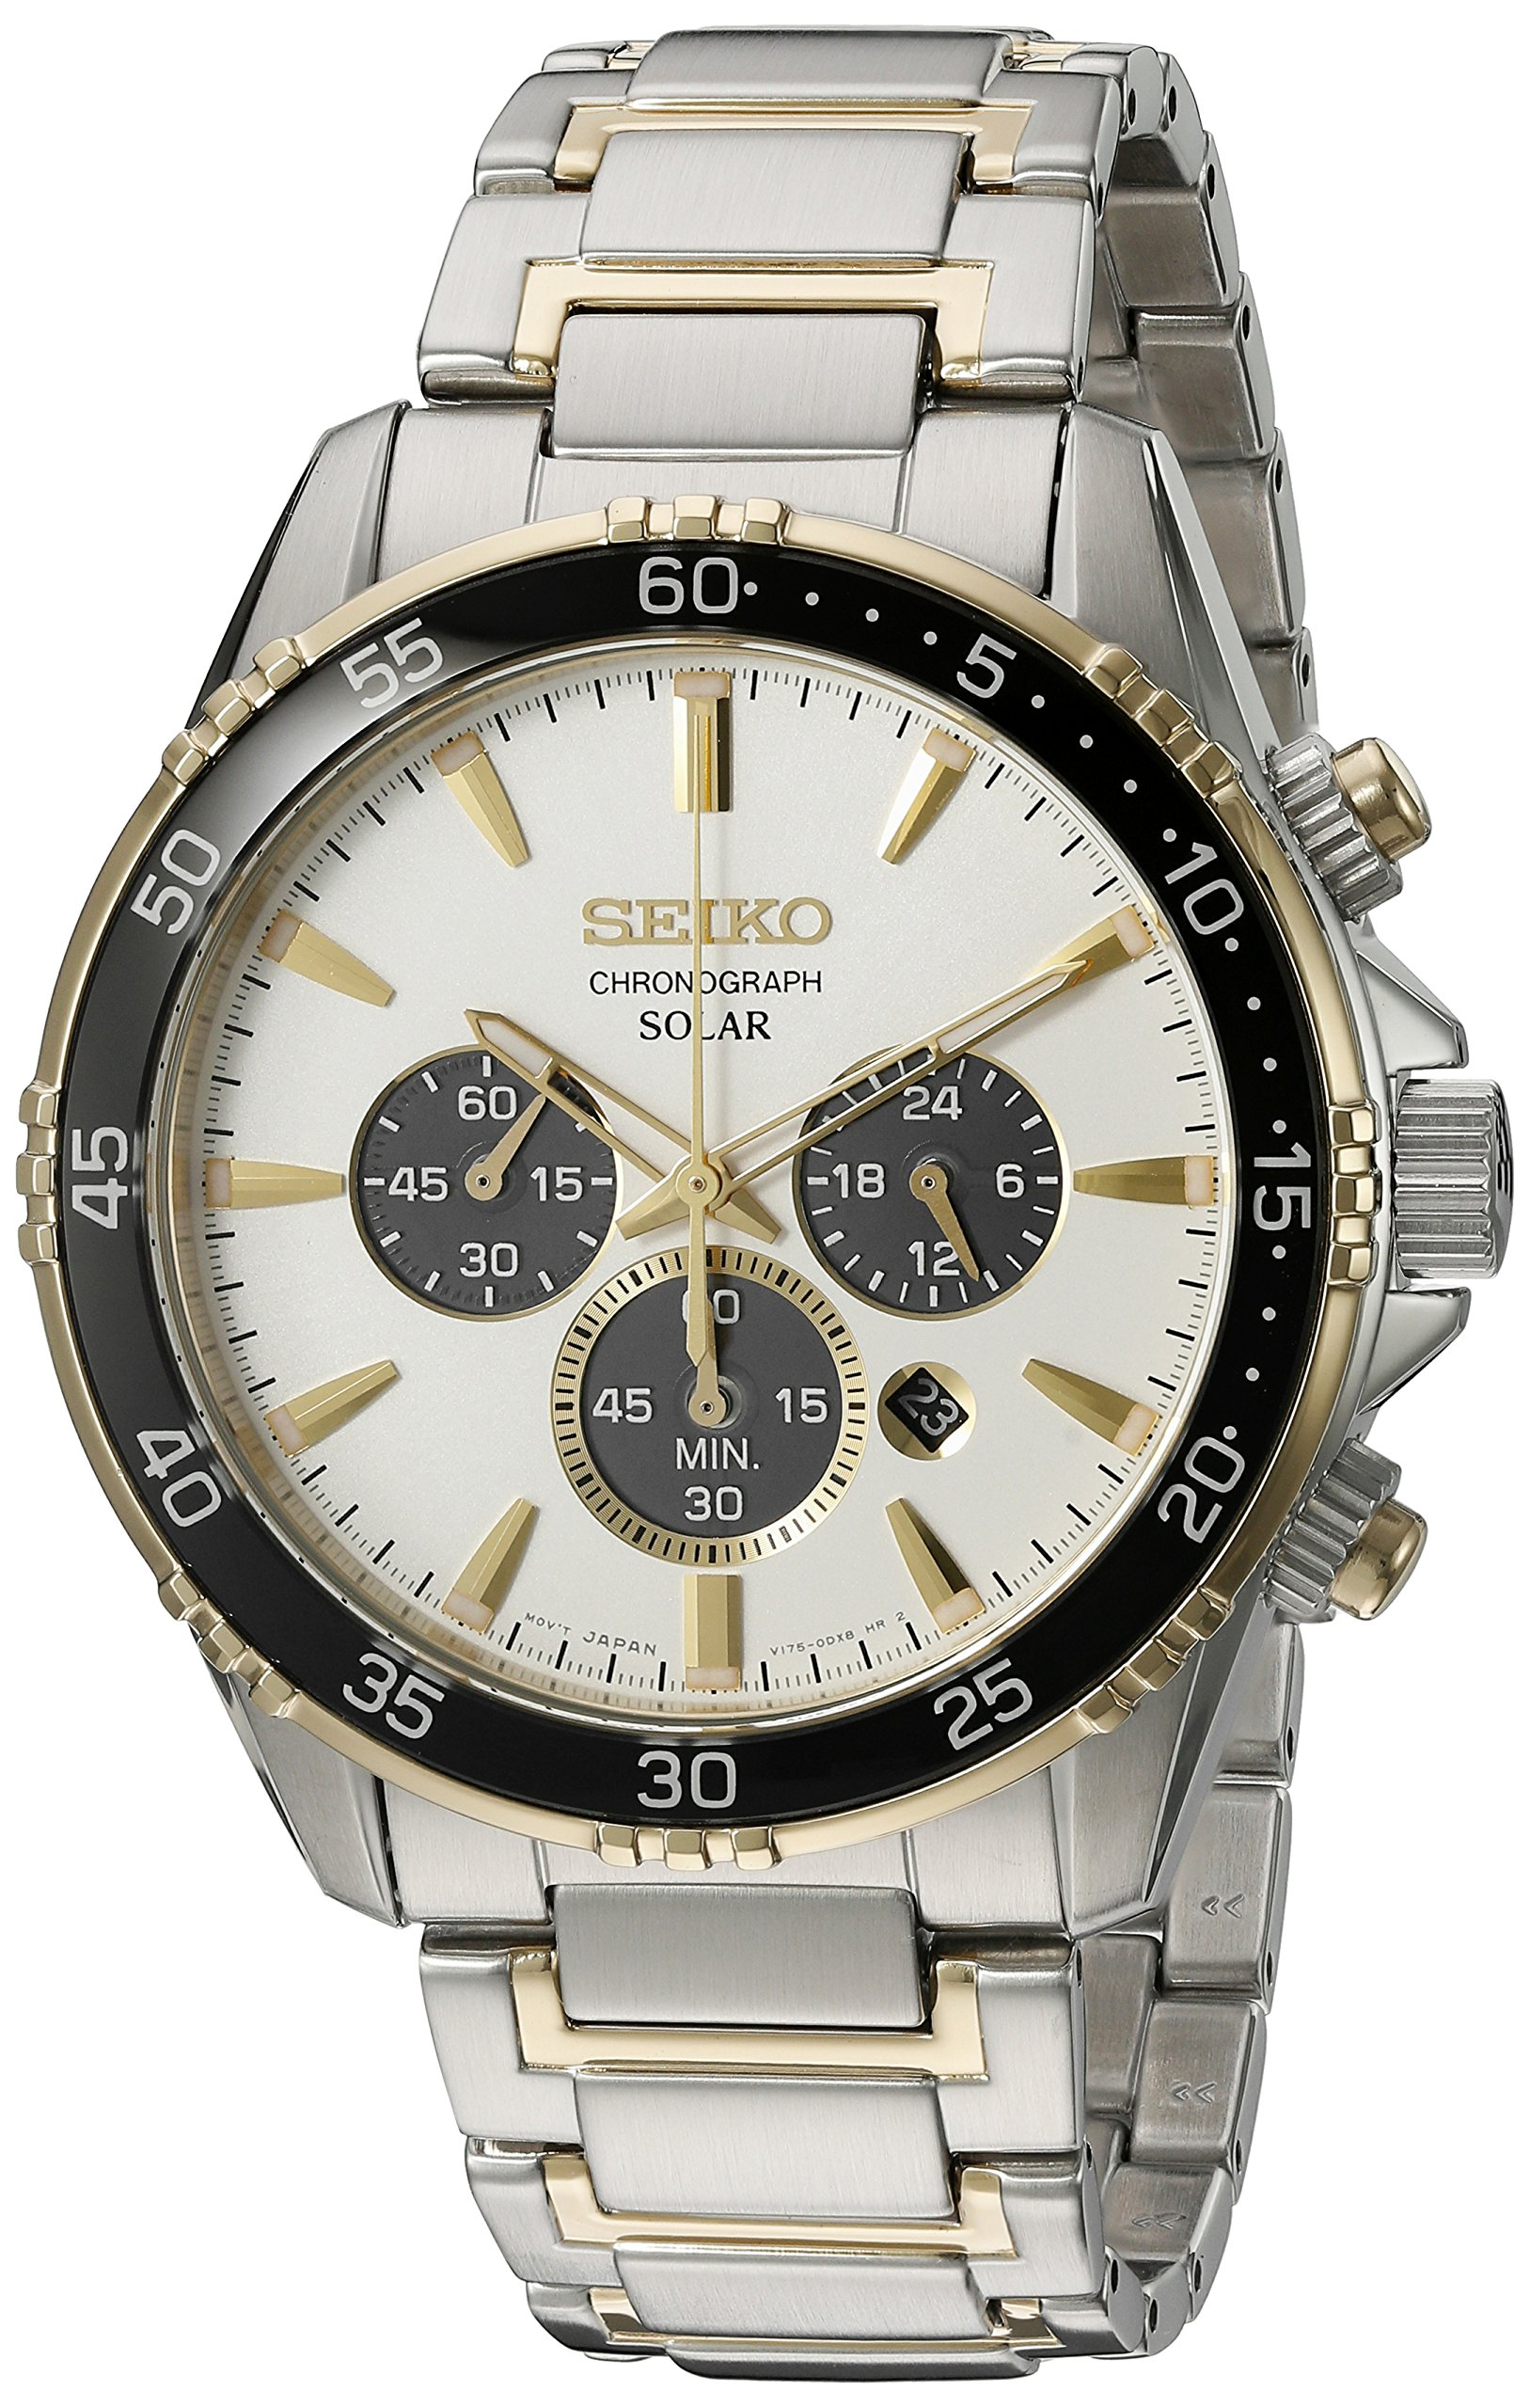 Seiko Men's 'Chronograph' Quartz Stainless Steel Dress Watch (Model: SSC446) by Seiko